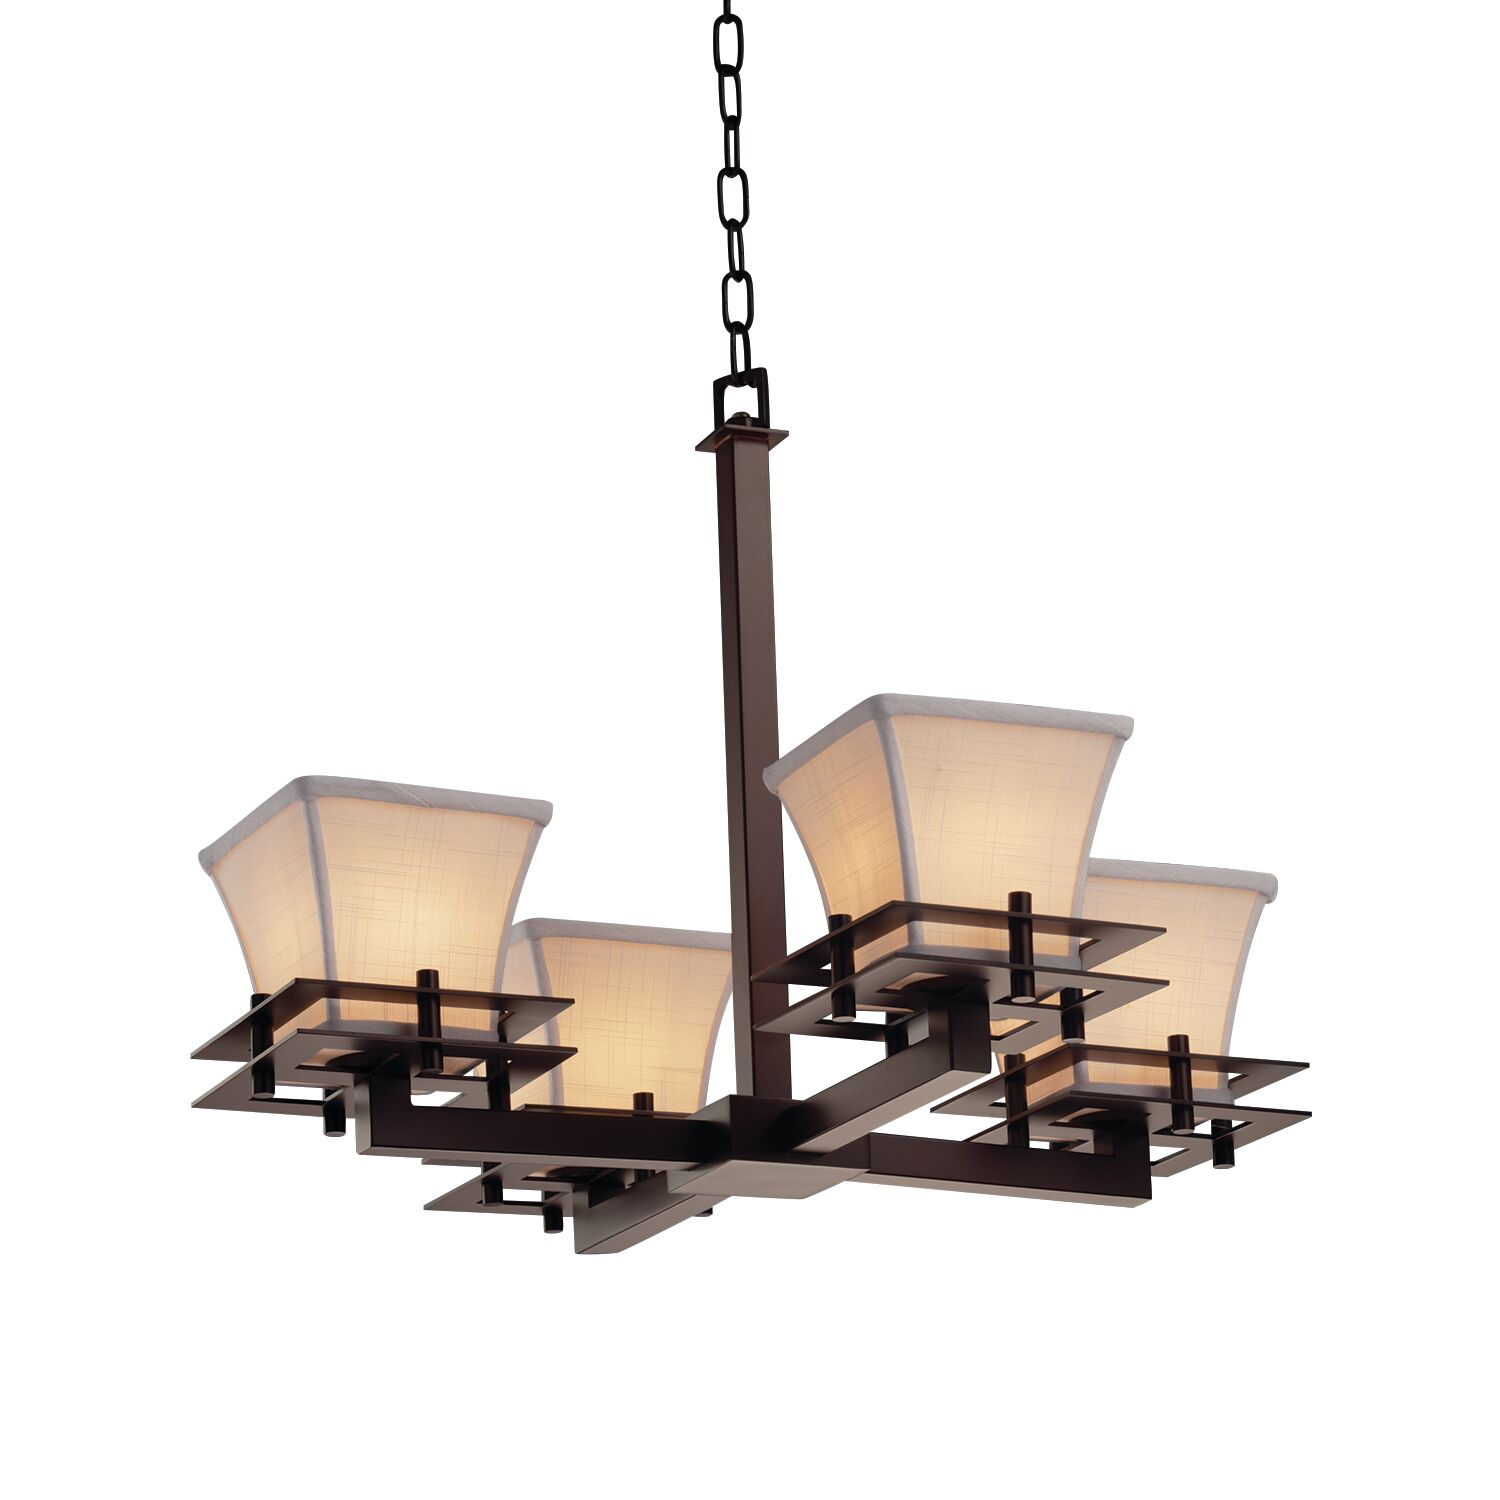 Red Hook 4 Light LED Square Flared Chandelier Finish: Brushed Nickel, Shade Color: Cream